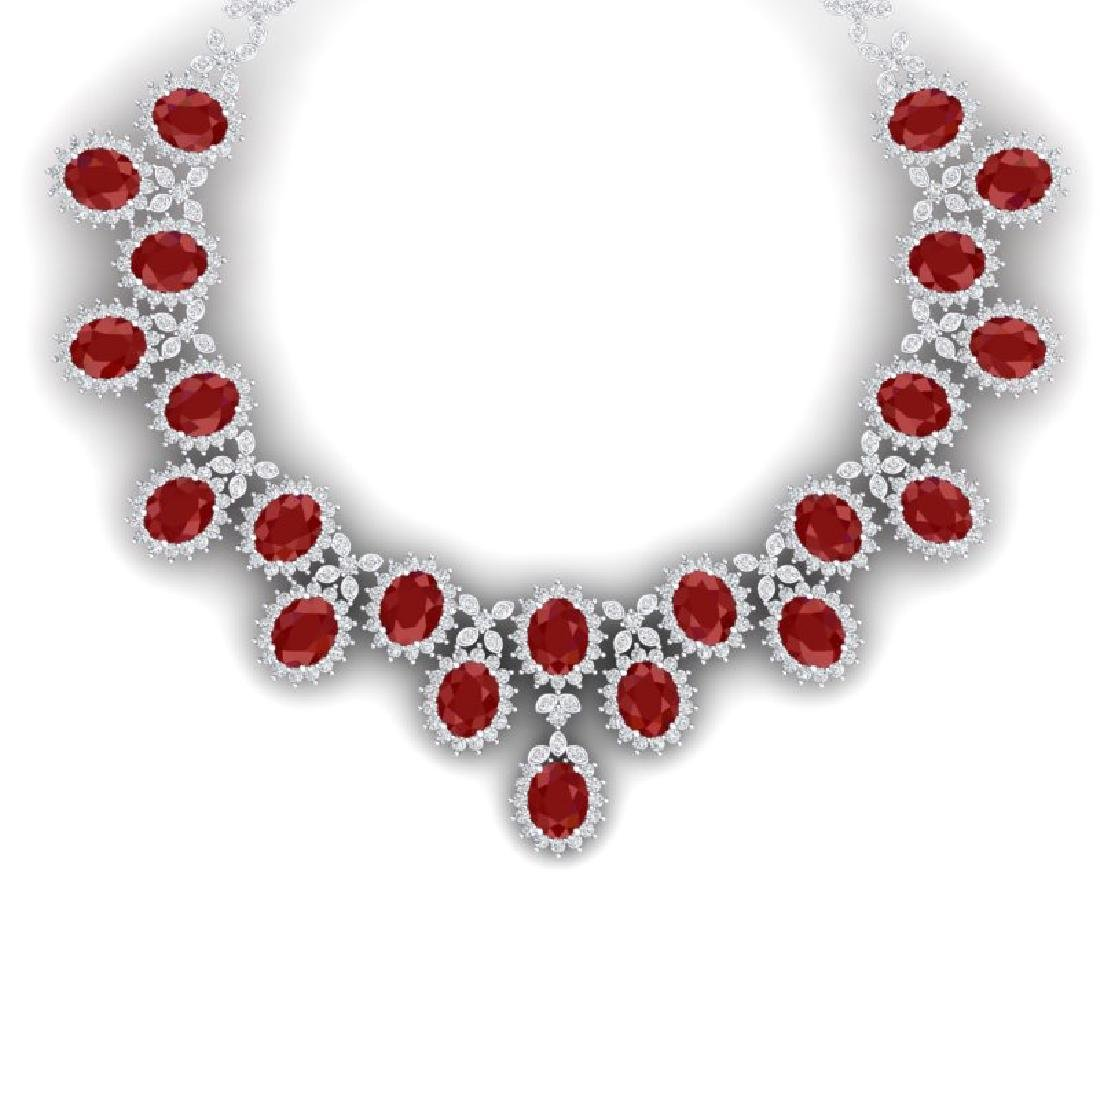 81 CTW Royalty Designer Ruby & VS Diamond Necklace 18K